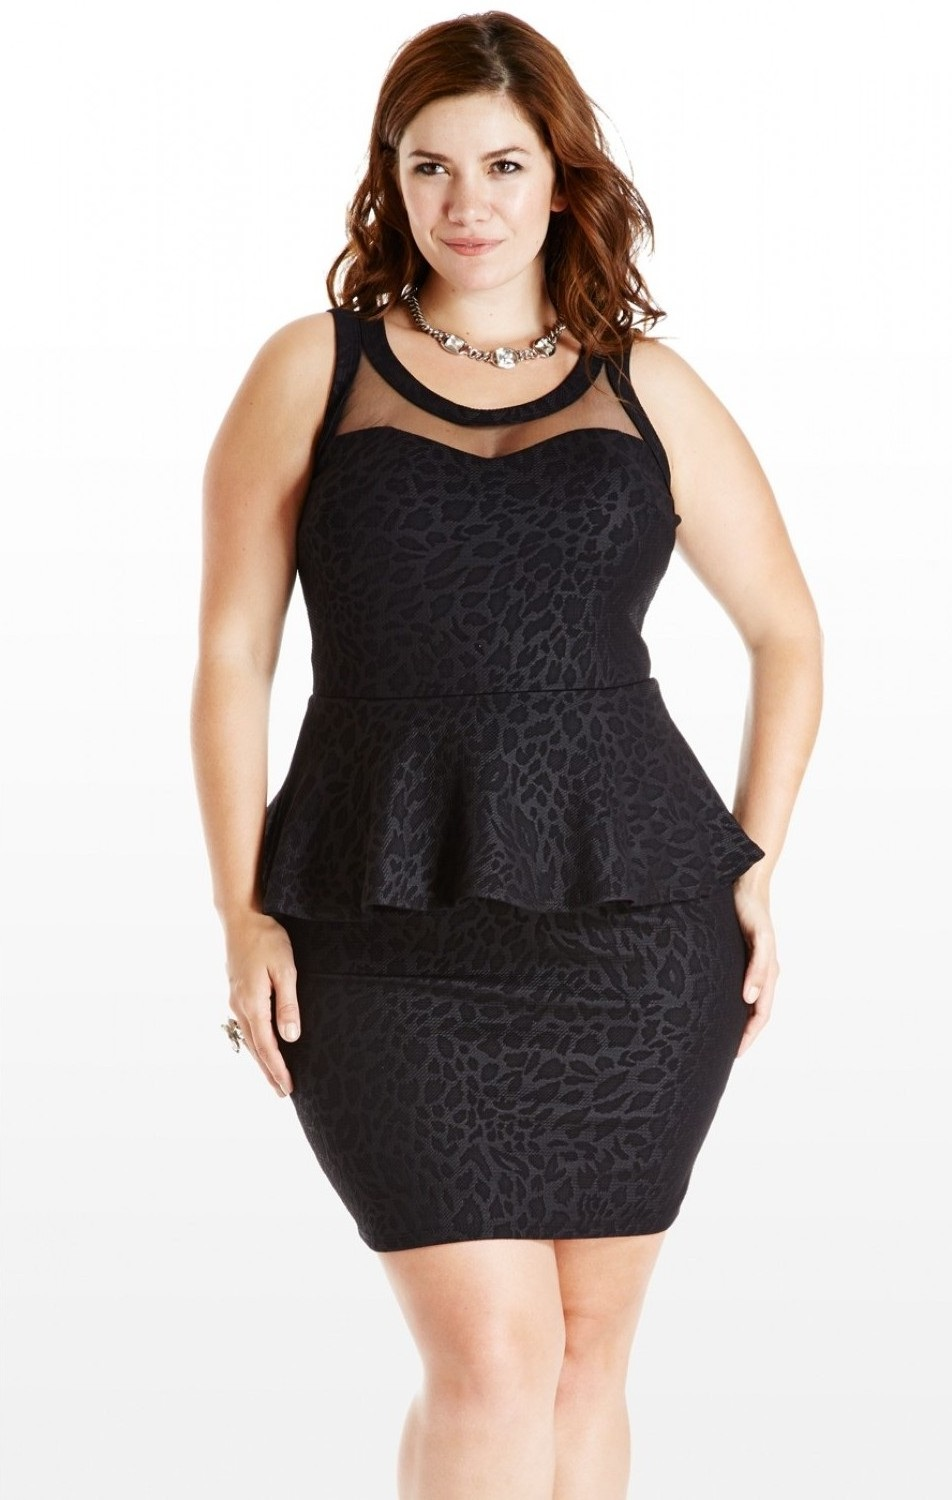 Shop Plus Size Dresses including Cute Plus Size Party Dresses, Cute Plus Size Maxi Dresses and Cute Plus Size Bodycon Dresses! Find the Perfect Cute Dresses for Every Occasion at Affordable Prices. FRIENDS & FAMILY SALE: 30% OFF SITEWIDE! USE CODE: NATIVE. FREE SHIPPING ON ORDERS OVER $50 + FREE RETURNS!